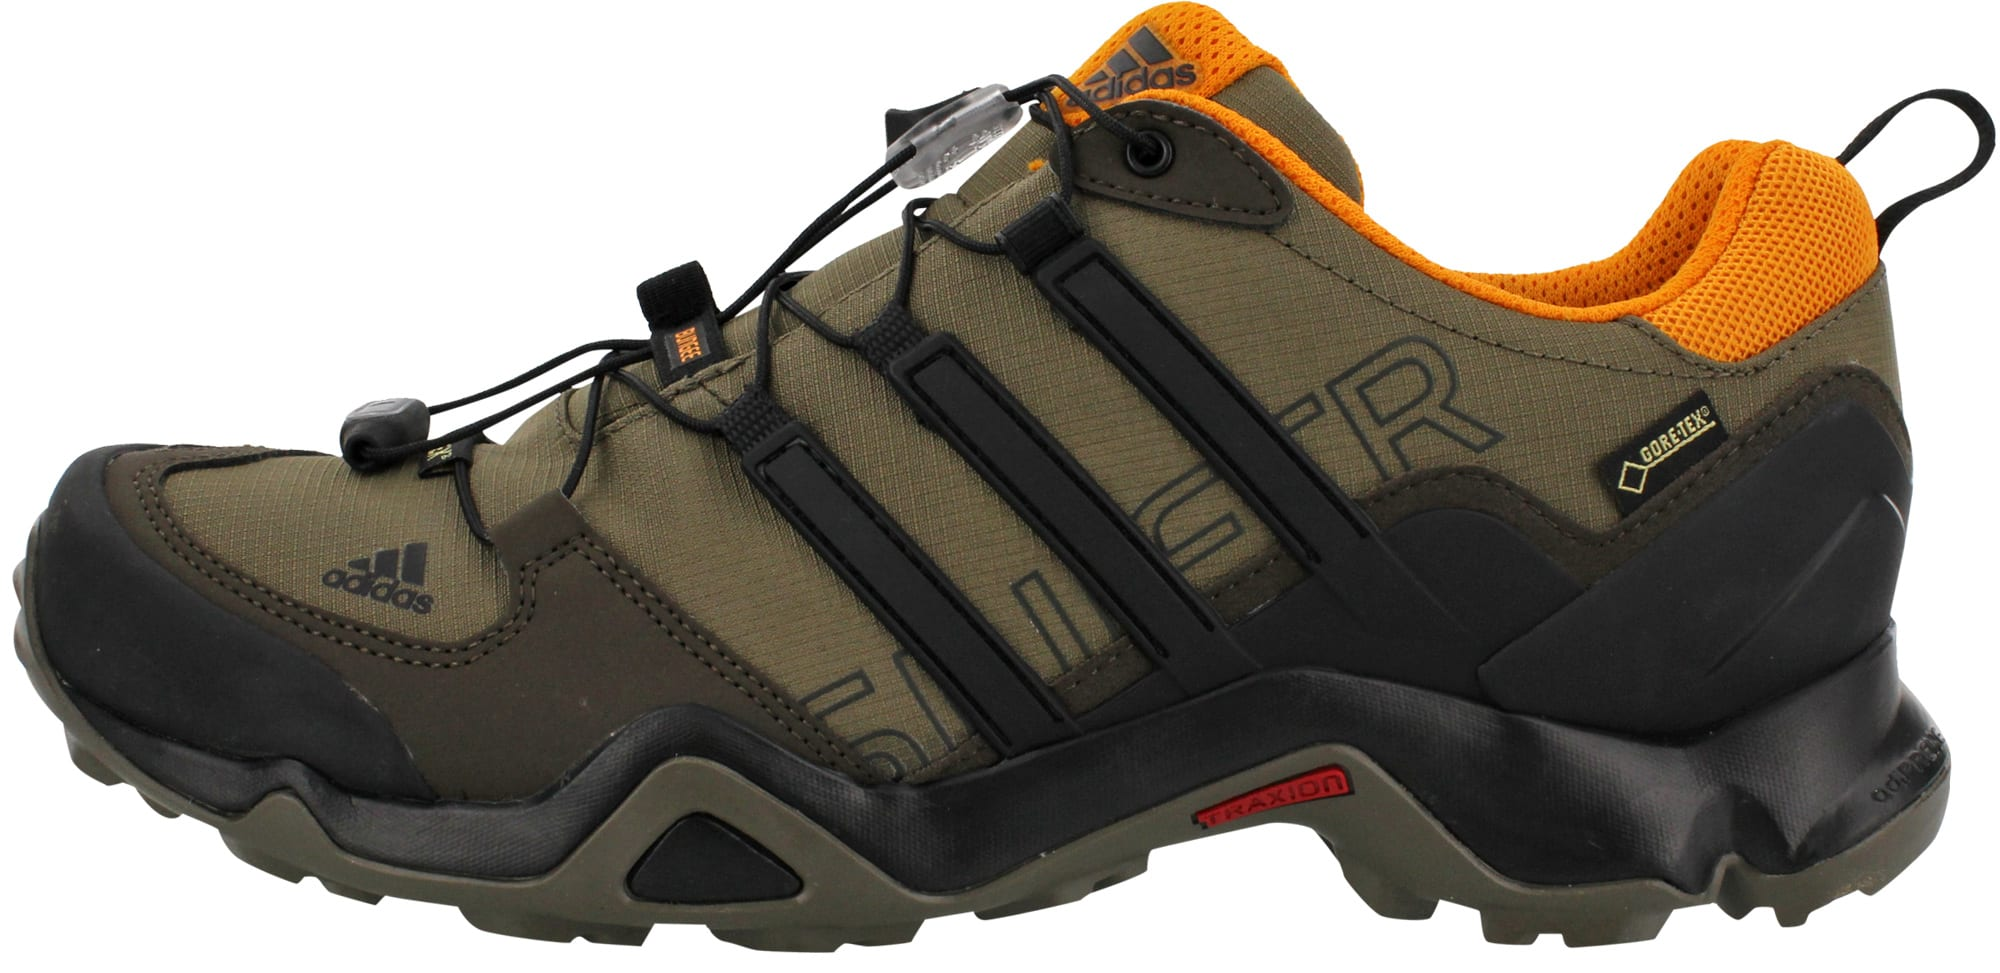 f0943ea33 Adidas Terrex Swift R GTX Hiking Shoes - thumbnail 2